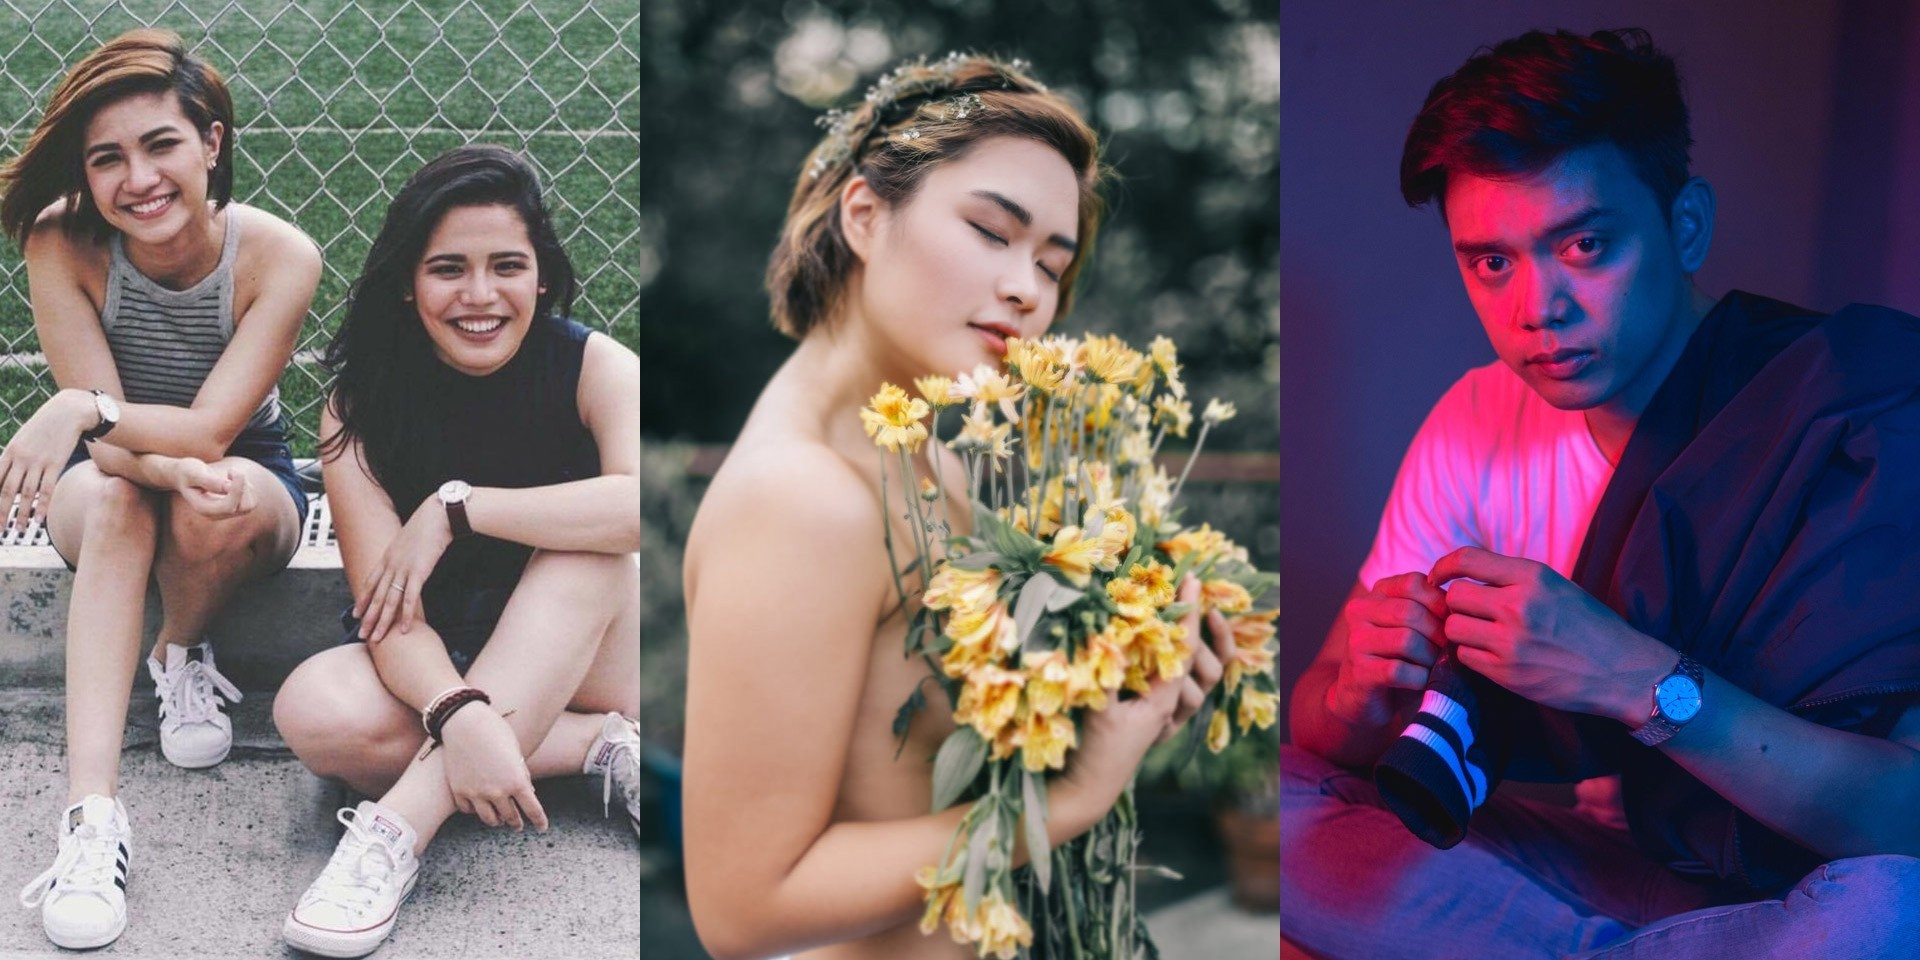 Leanne & Naara, Rice Lucido, Juan Miguel Severo, and more release new music – listen